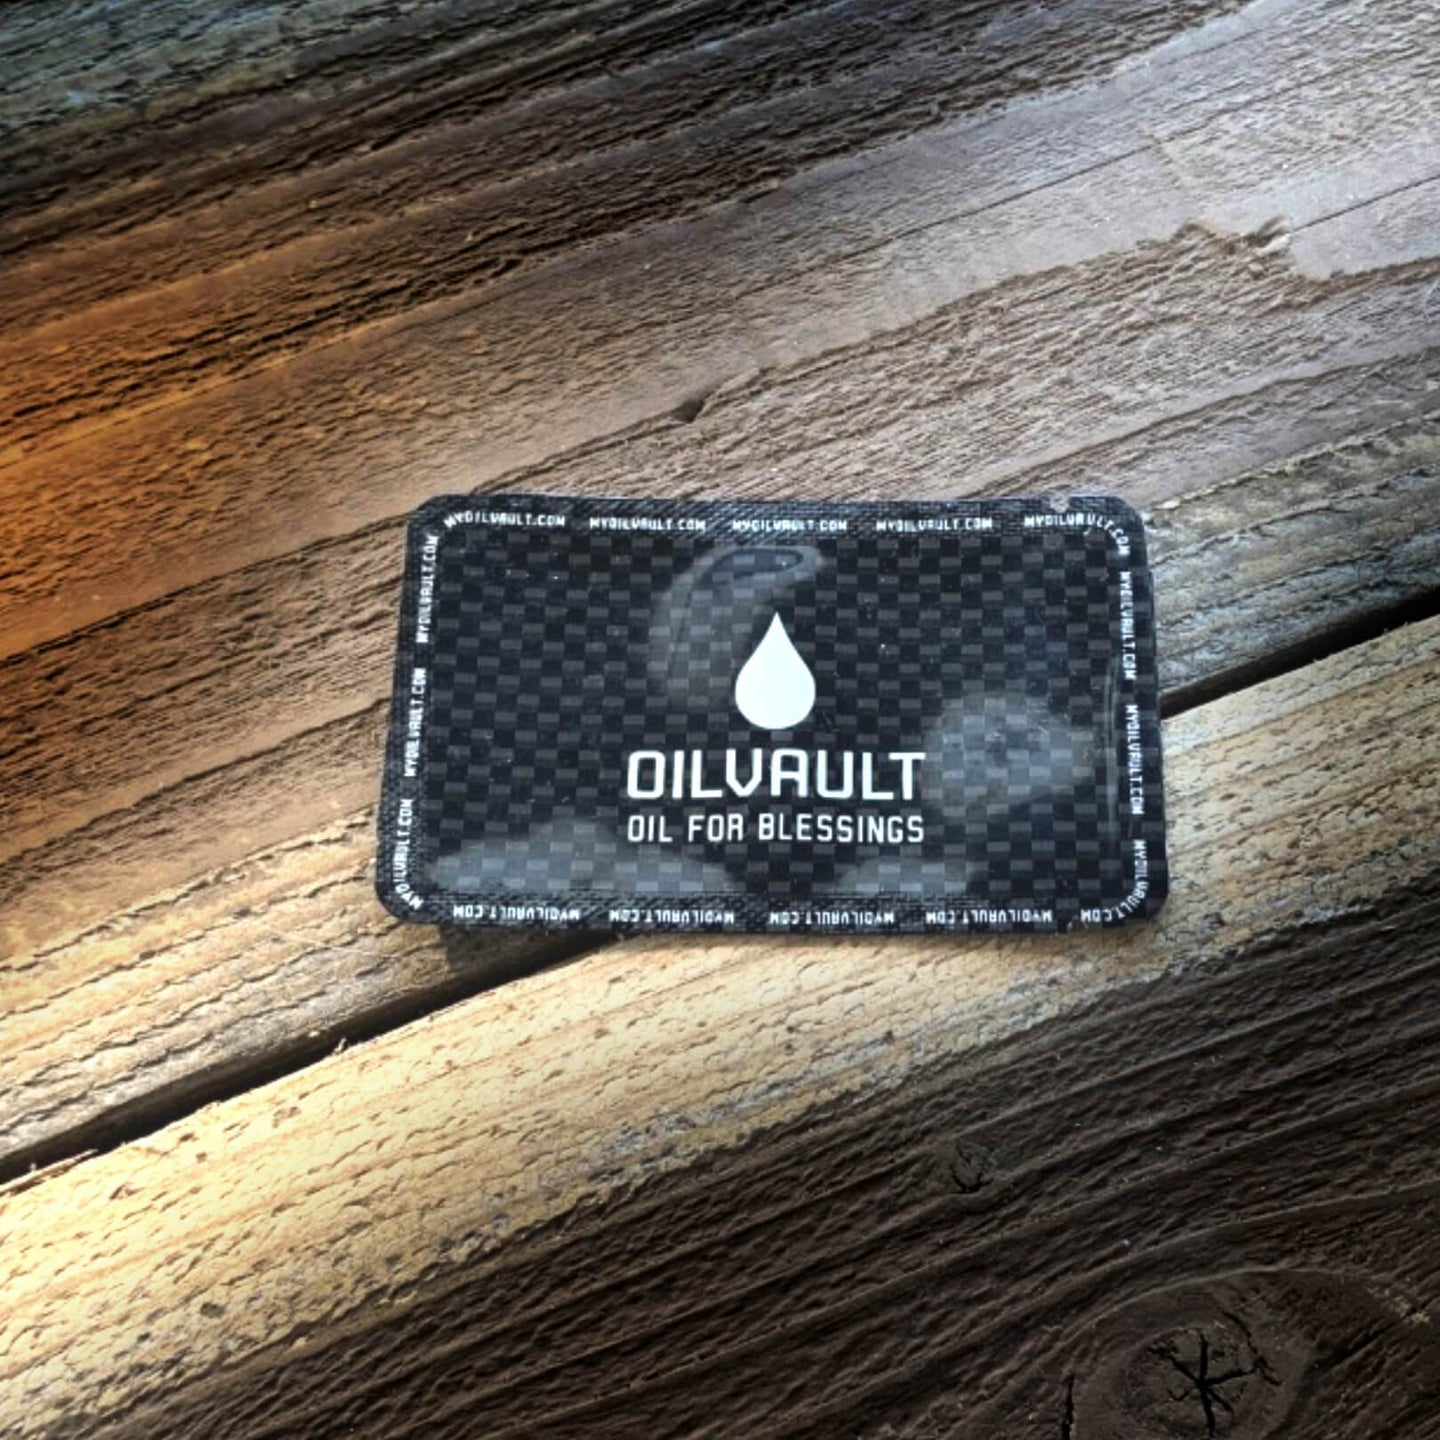 Oil Vials that go in your wallet.